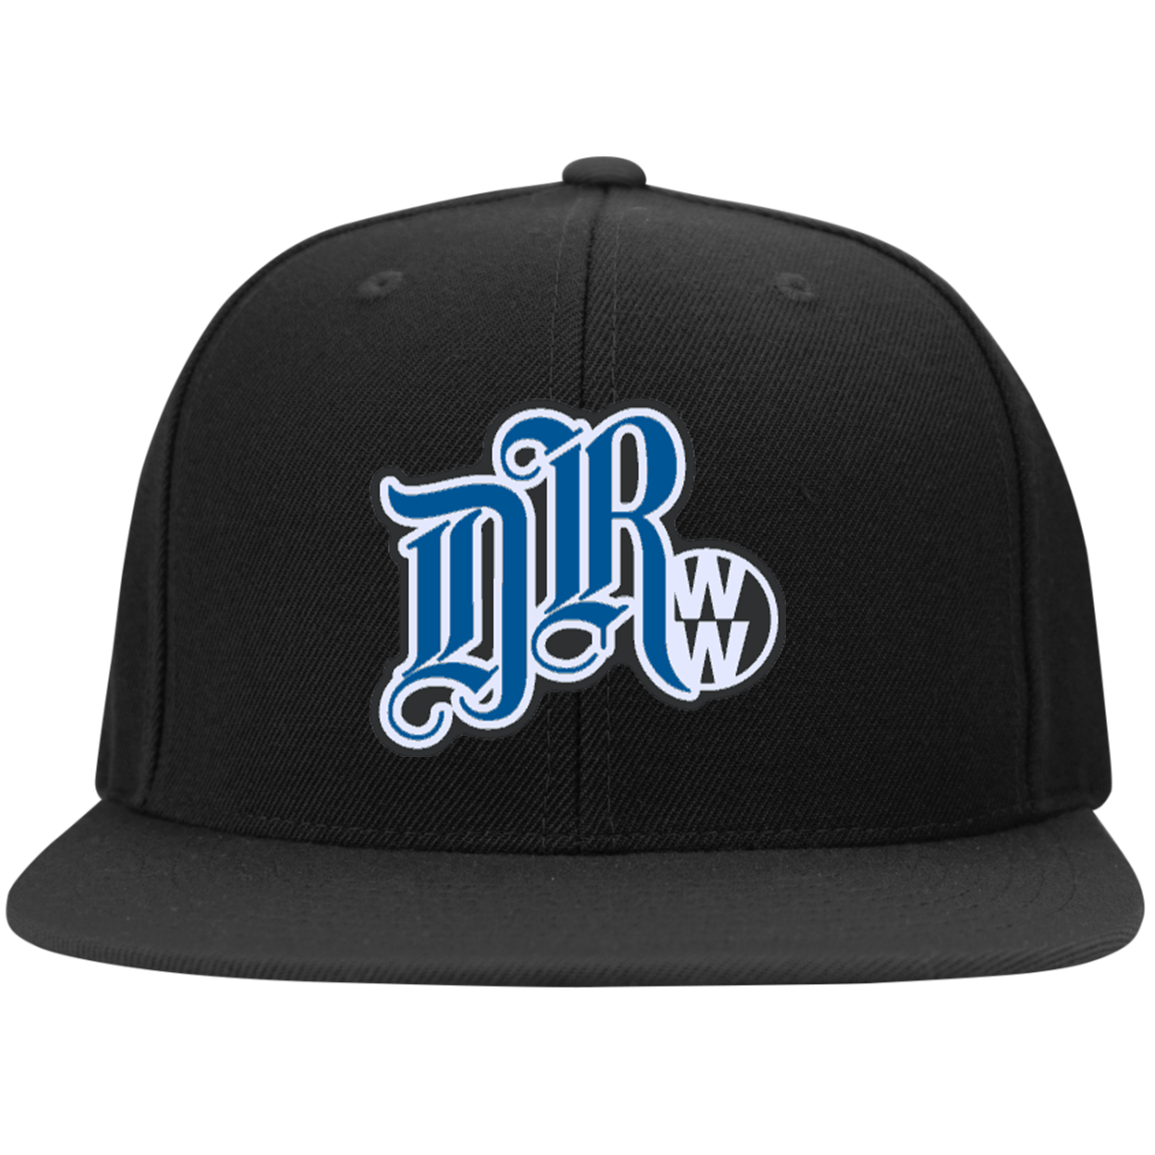 DRWW Embroidered Snapback (Blk/Blue), - Aircooled VW - Vintage Vdub